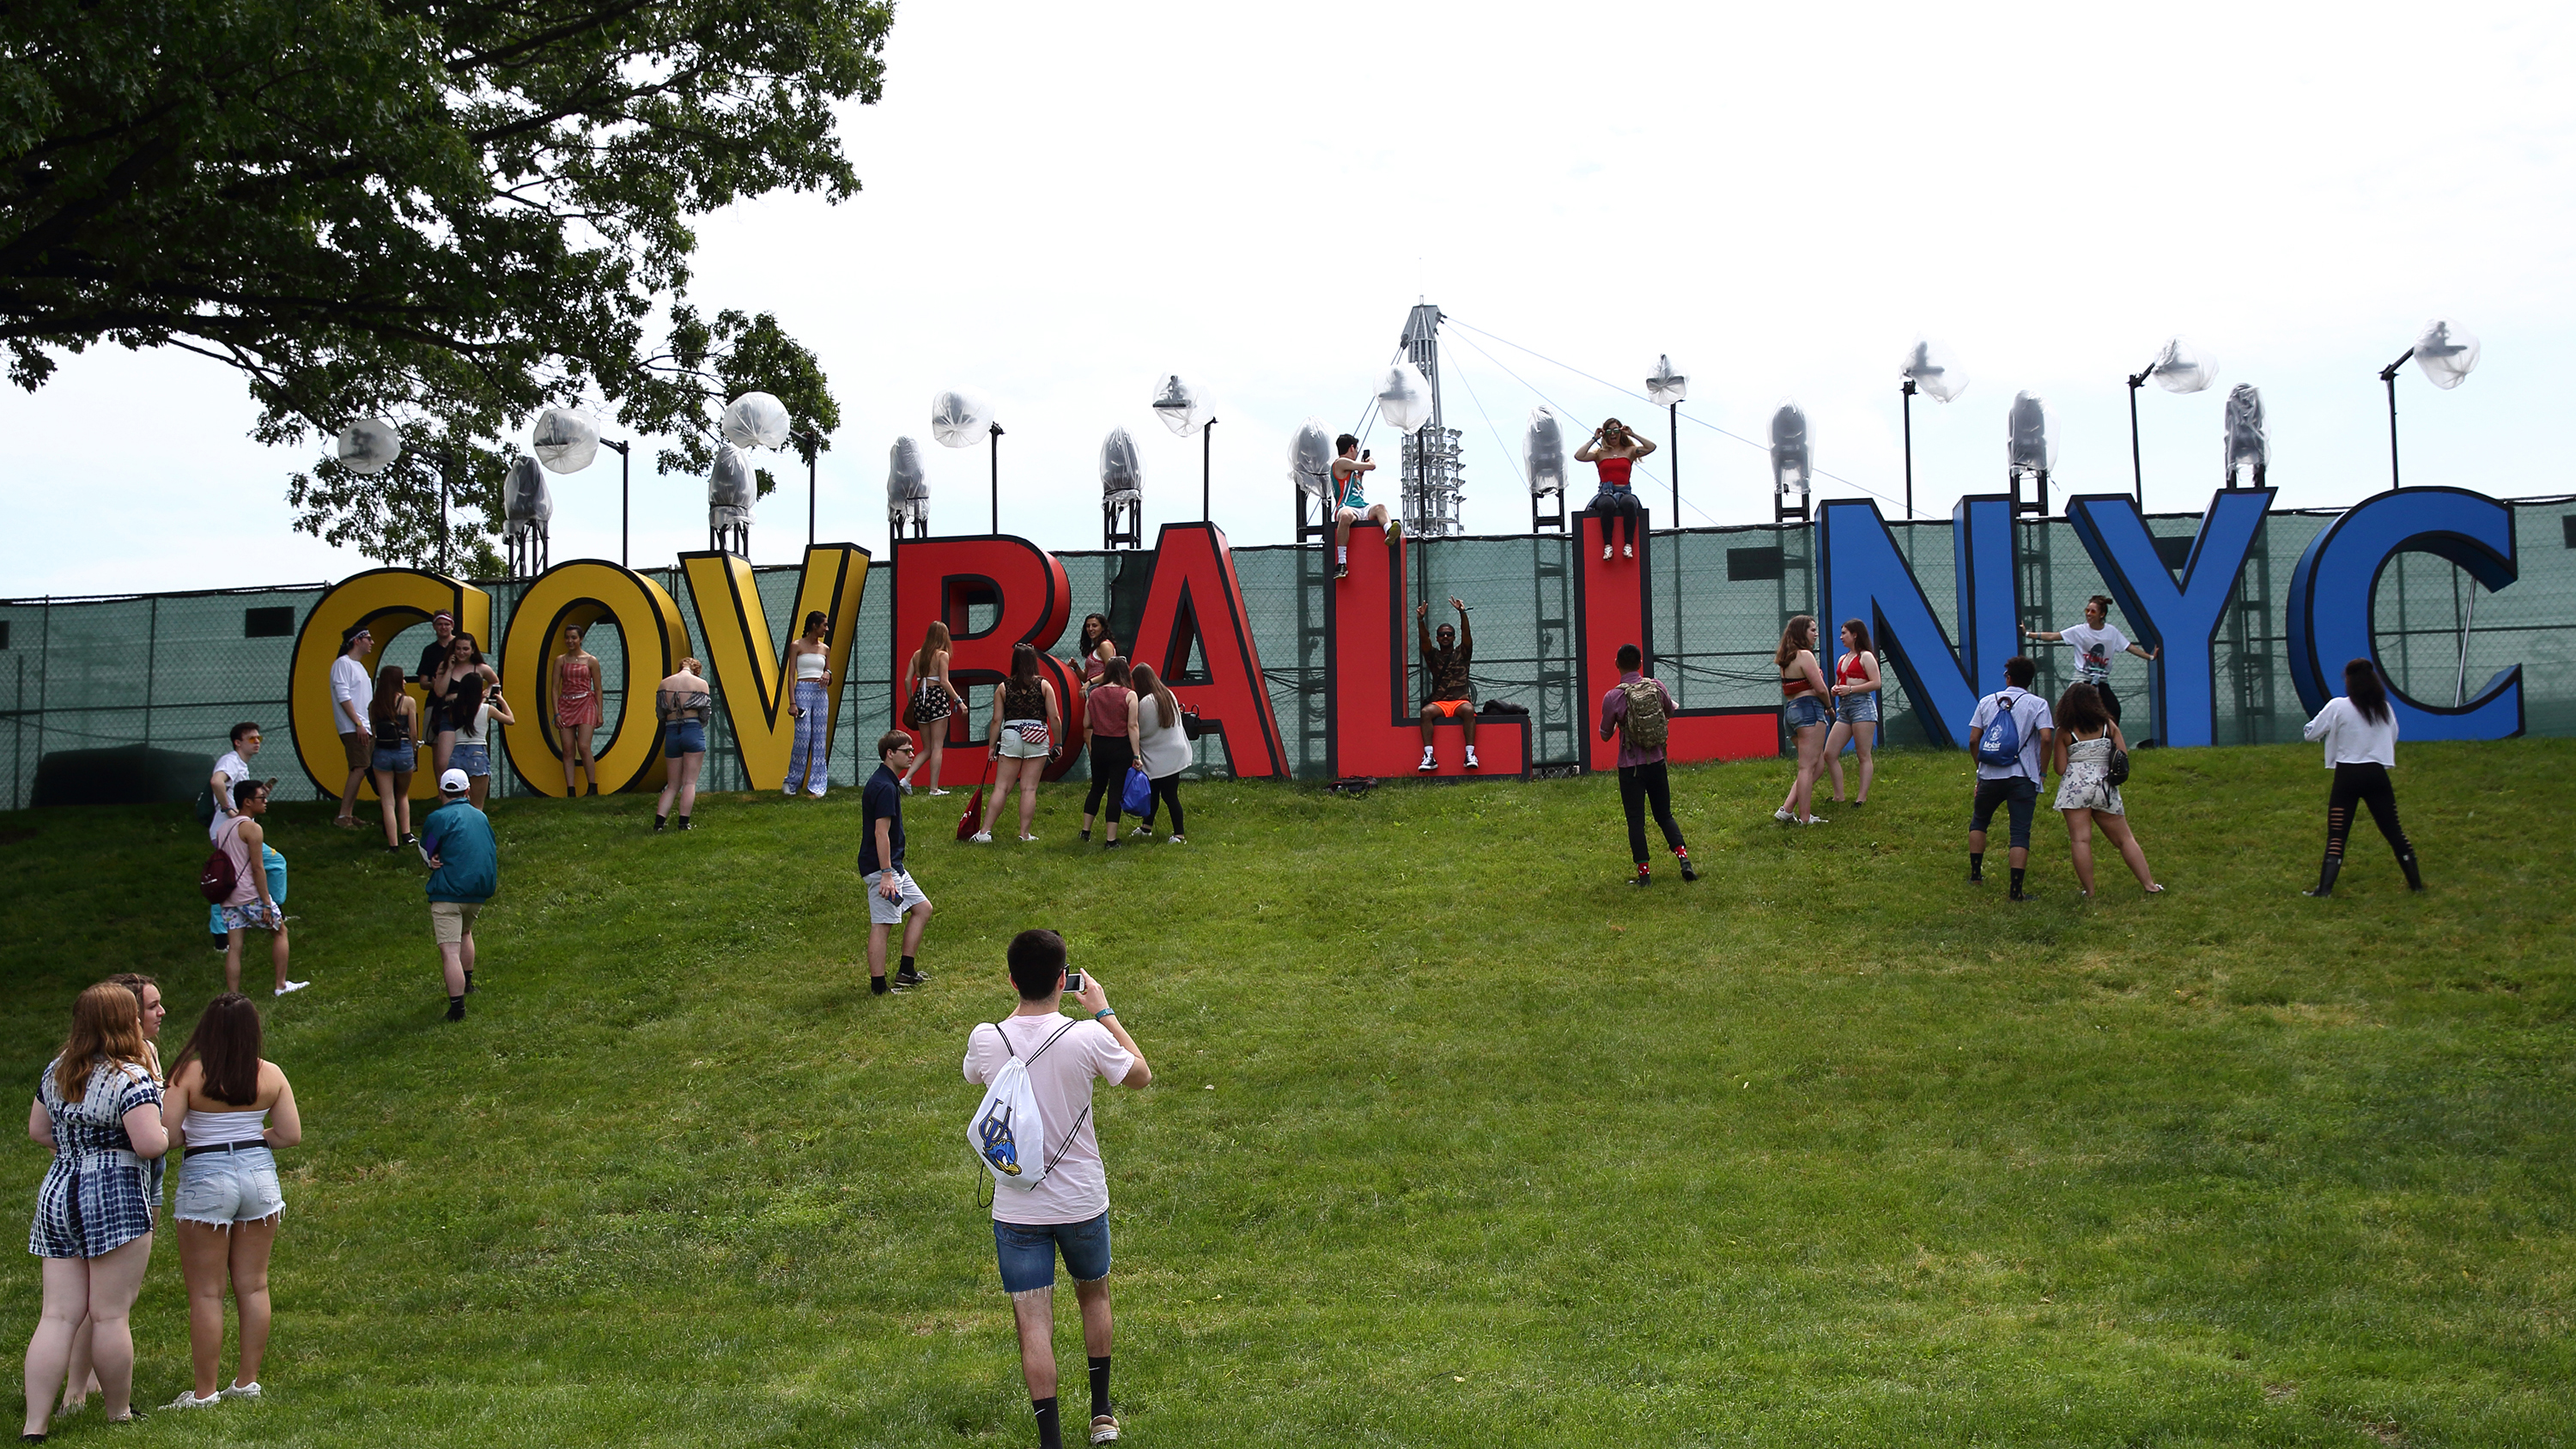 Governors Ball 2020 canceled in New York City because of coronavirus